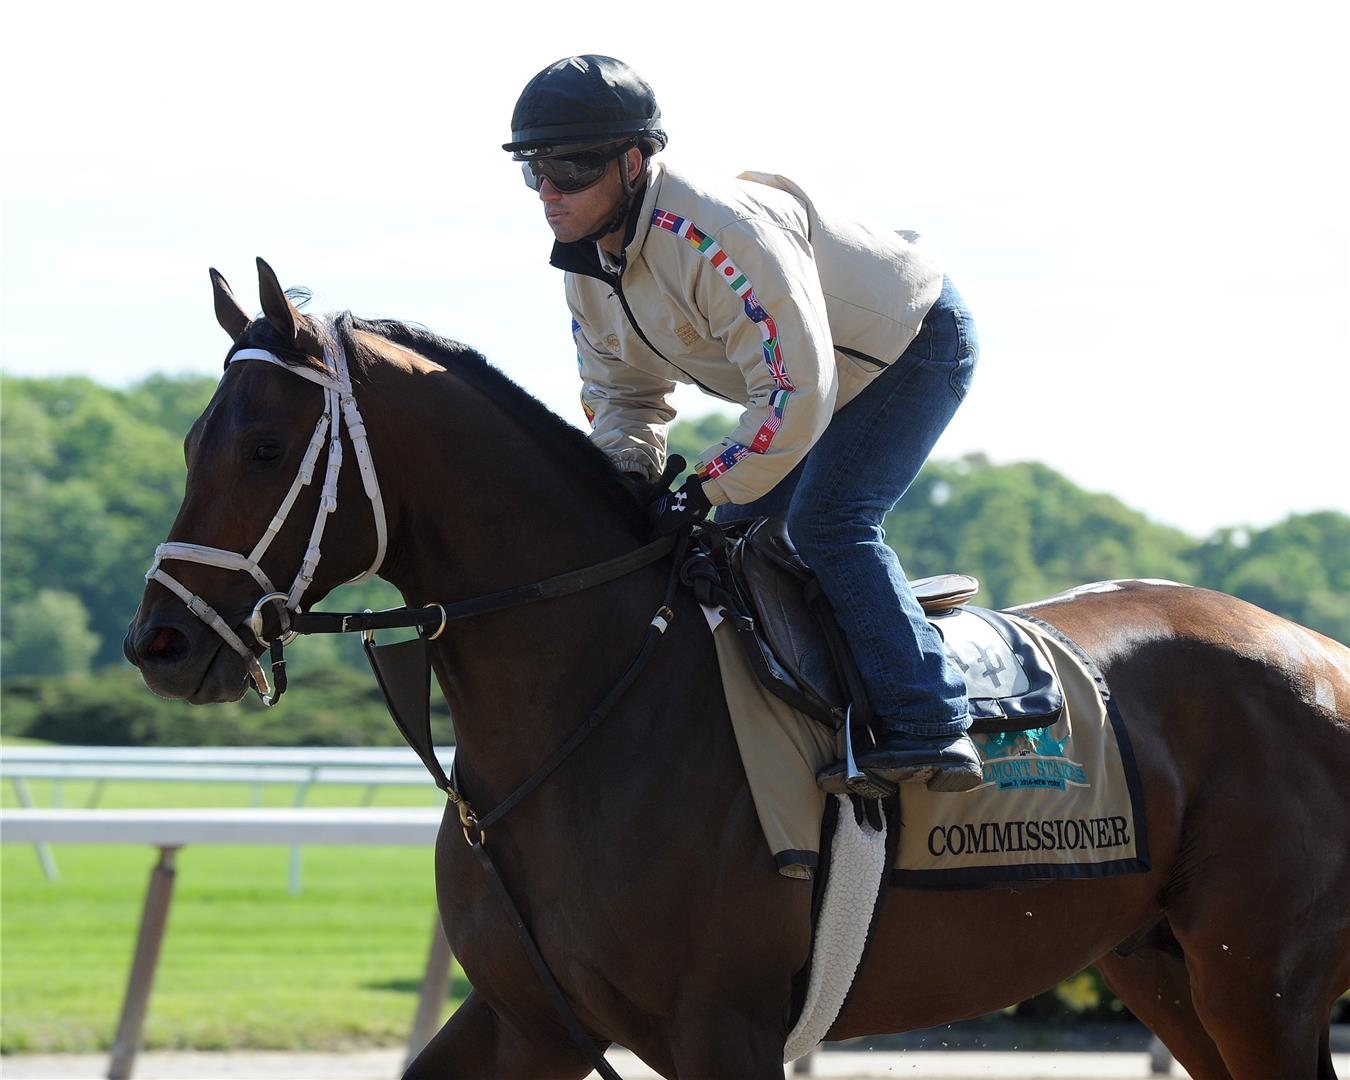 A.P. Indy's 3yo colt Commissioner trained well up to his runner-up performance in the Belmont S. (G1)